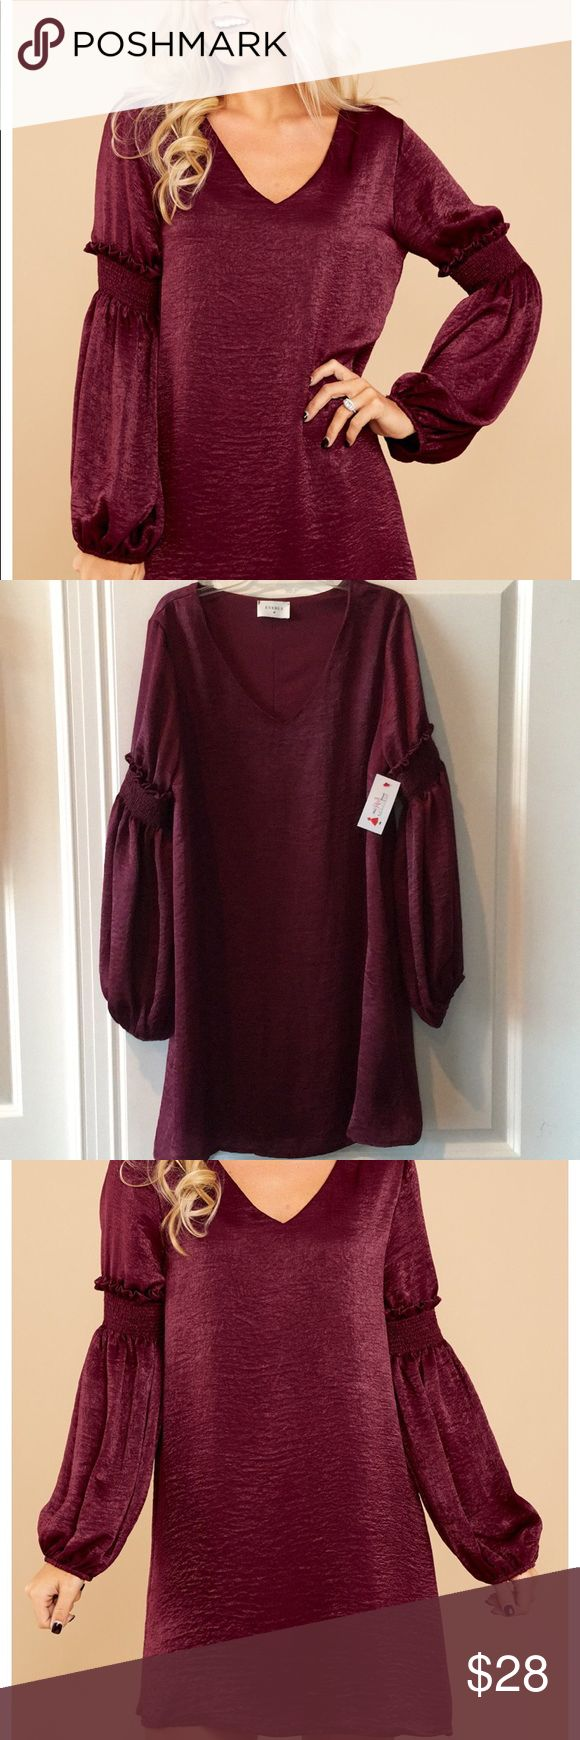 """NWT So Hot! By Red Dress Boutique Burgundy wine dress by Red Boutique """"Everly"""". See last photo for details. Model is a size 2 and is 5'2"""" with 25"""" waist. Pretty dress for a fun night out Red Dress Boutique Dresses"""